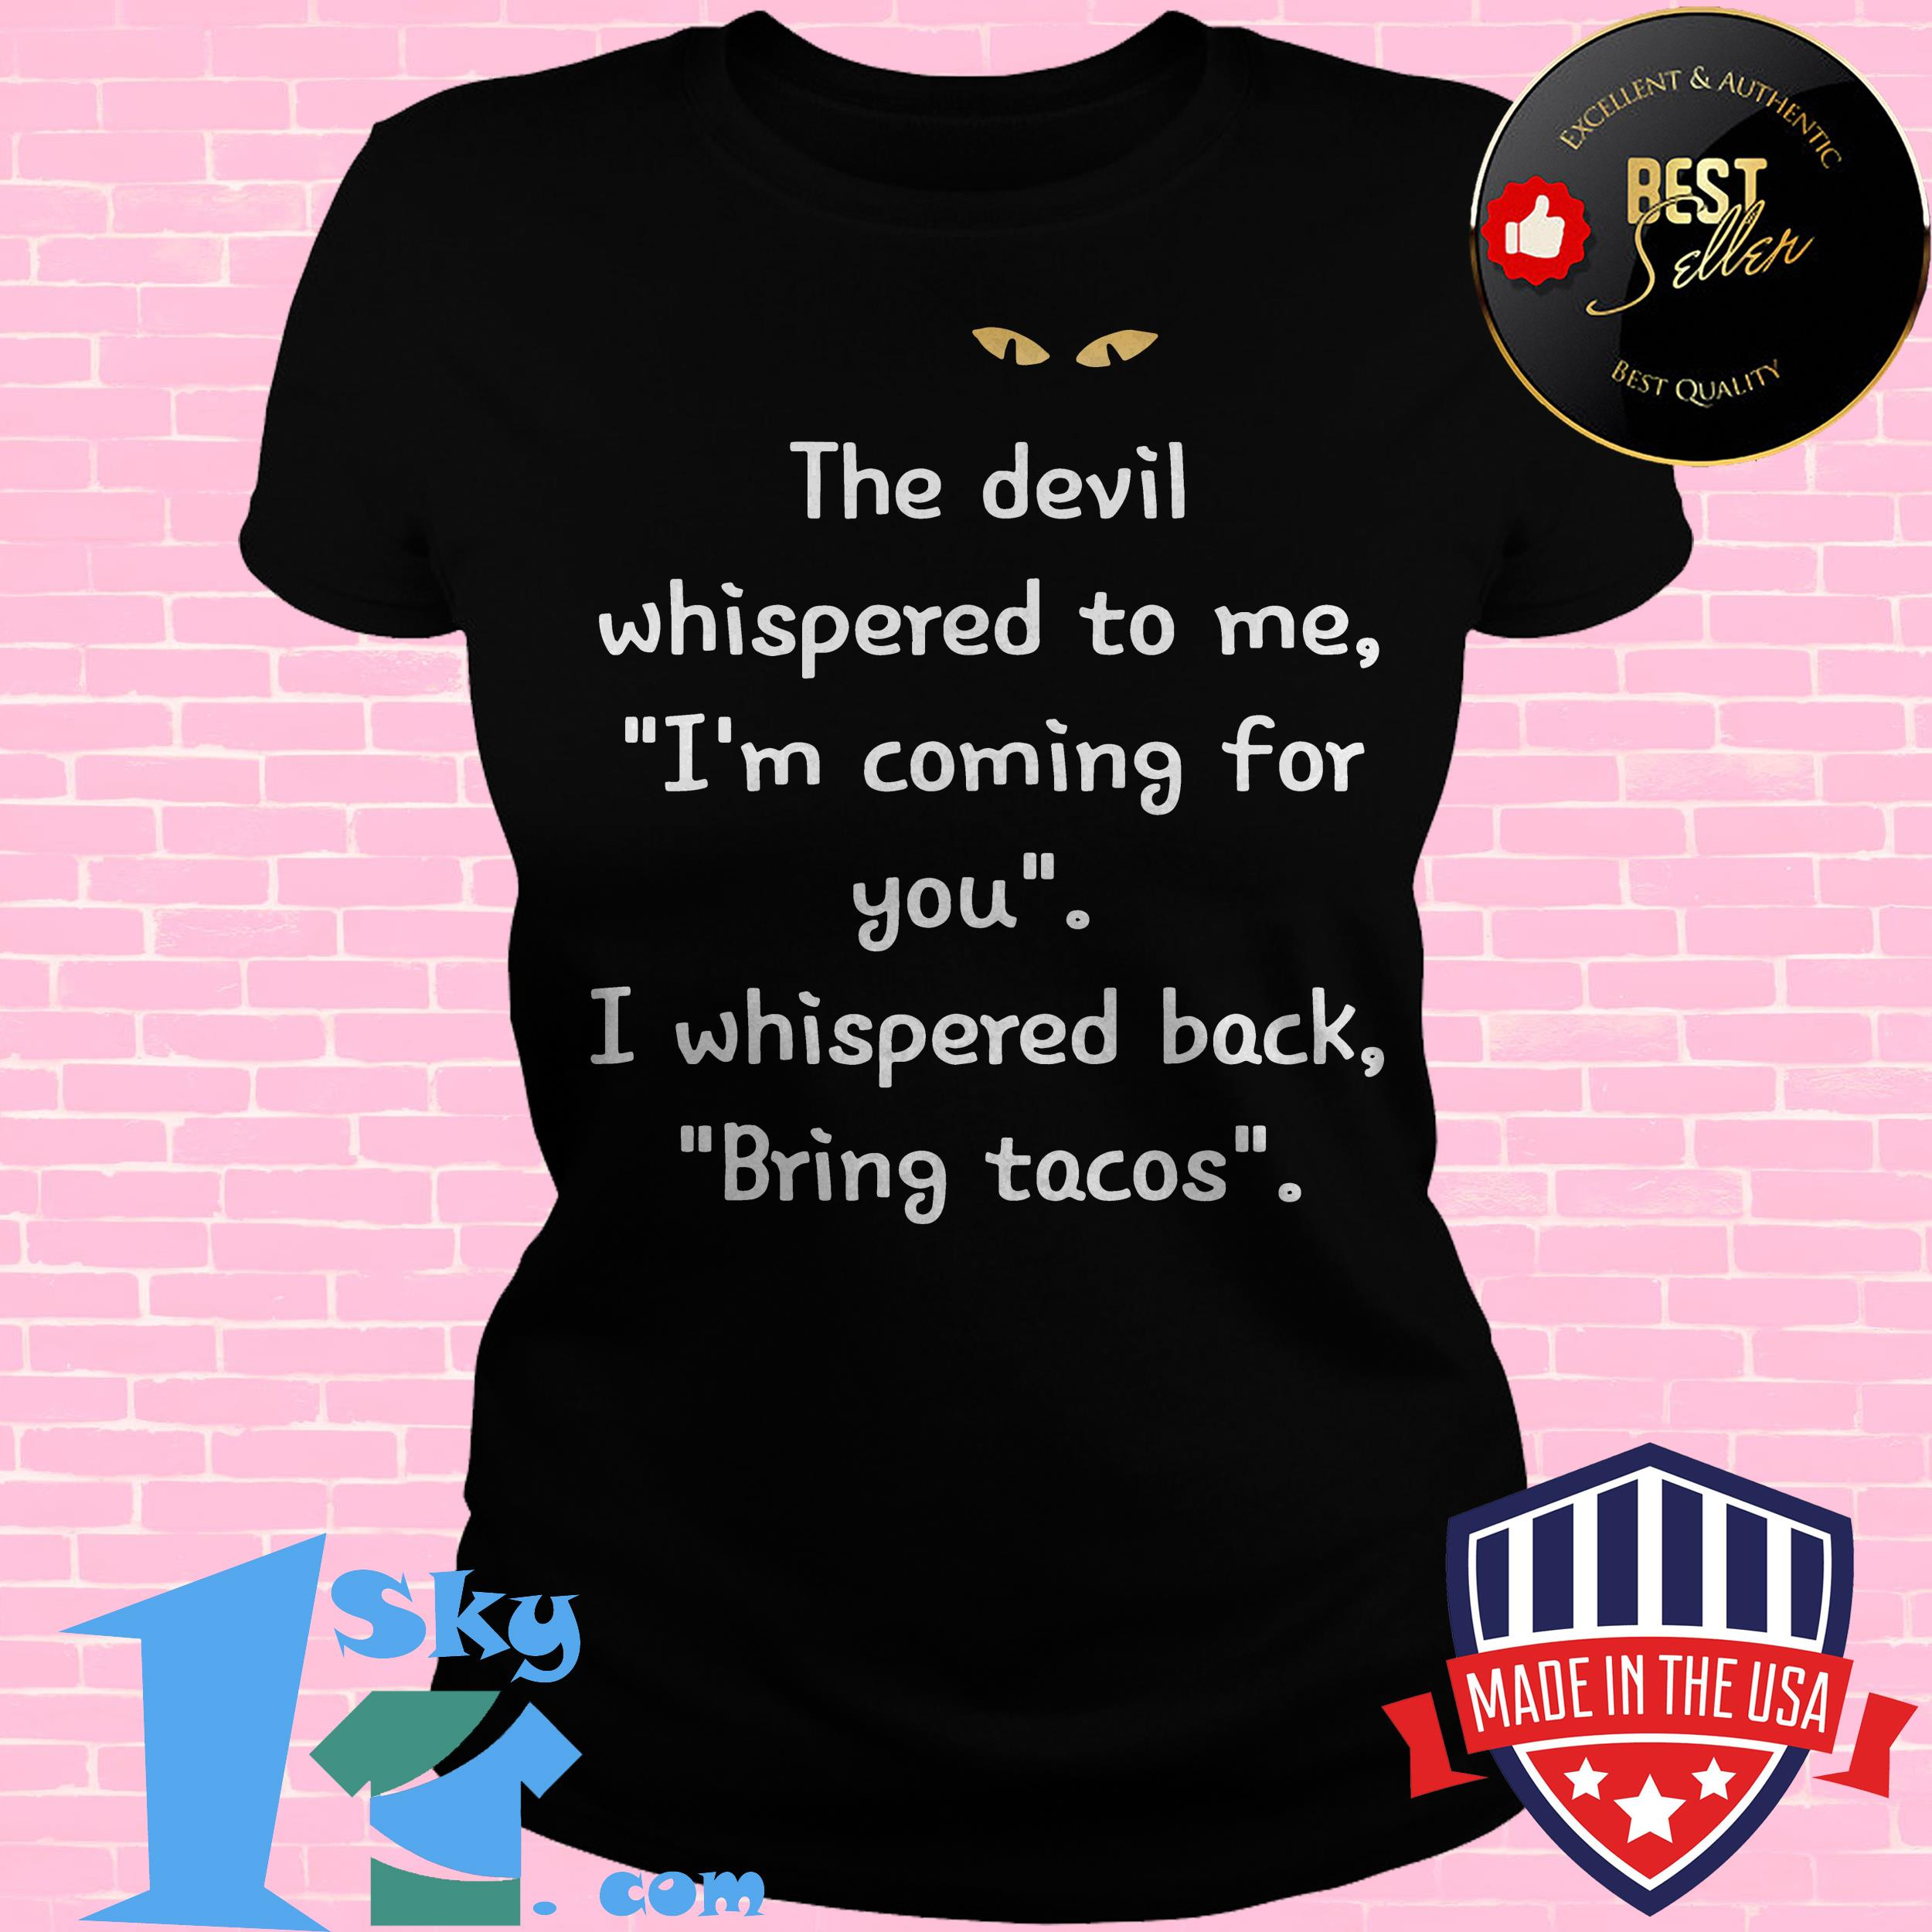 the devil whispered to me im coming for you i whispered back bring tacos ladies tee - The Devil Whispered To Me I'm Coming For You I Whispered Back Bring Tacos shirt